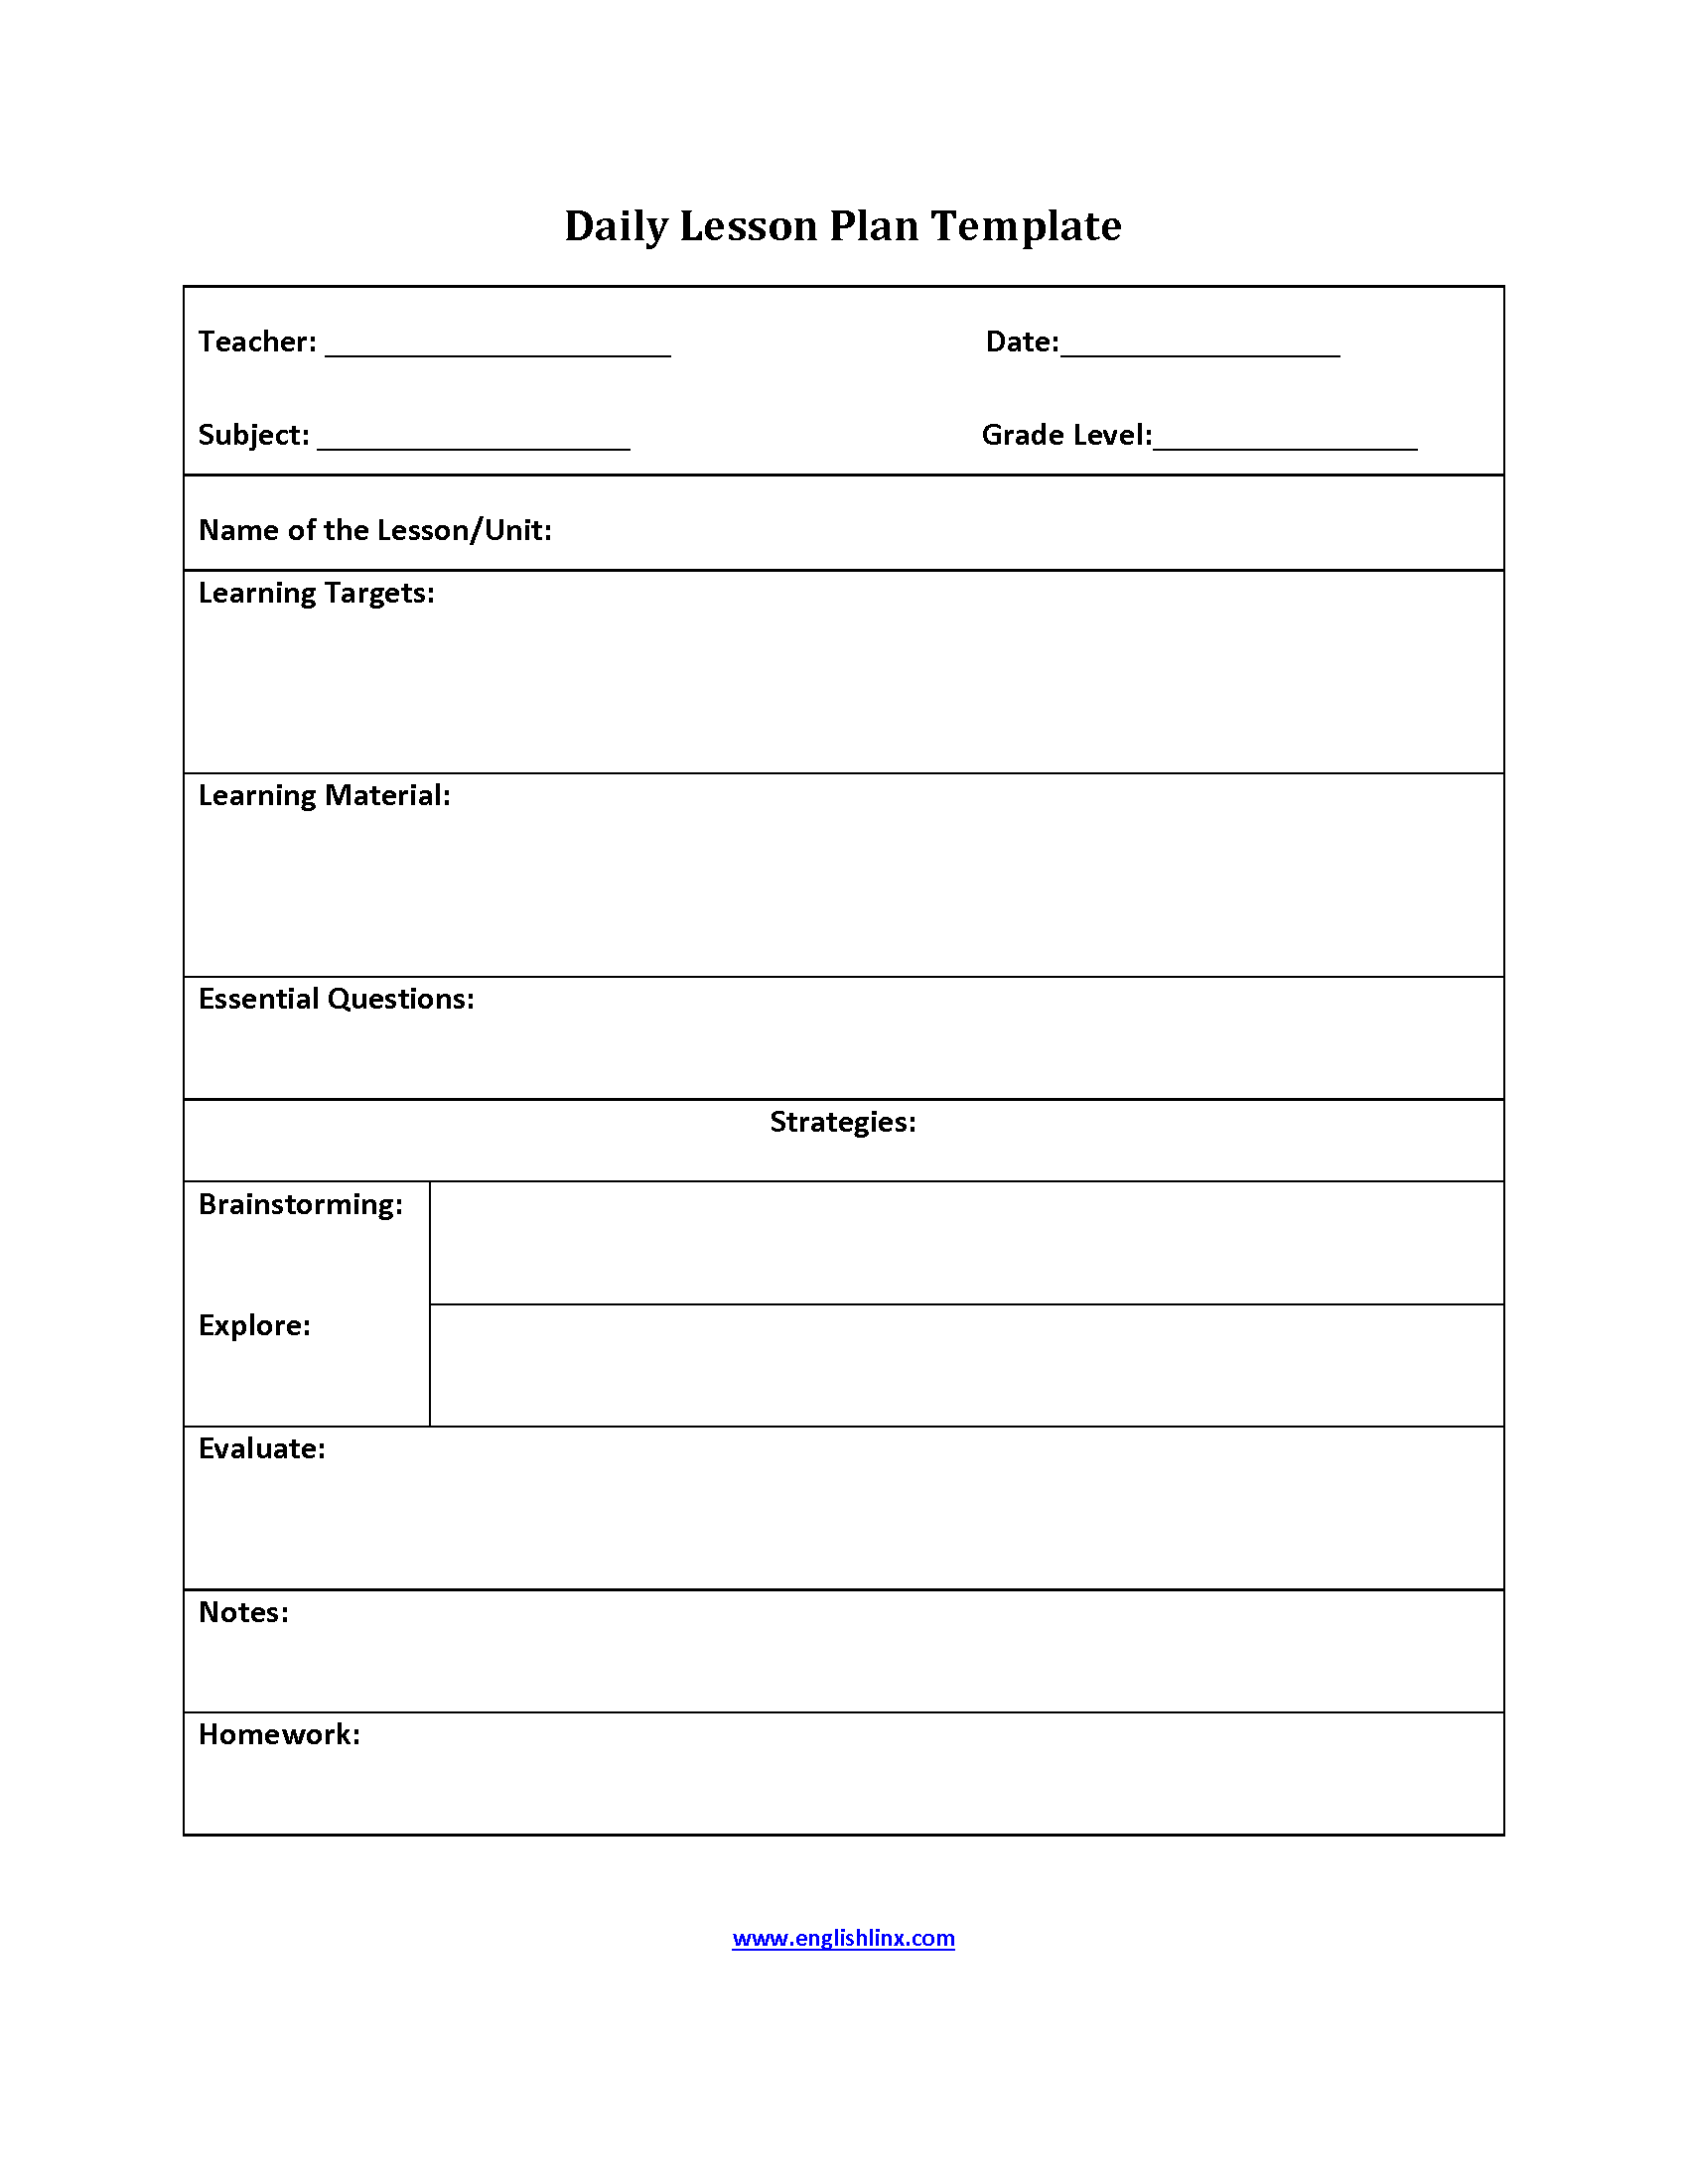 Englishlinxcom Lesson Plan Template - Free printable lesson plan templates